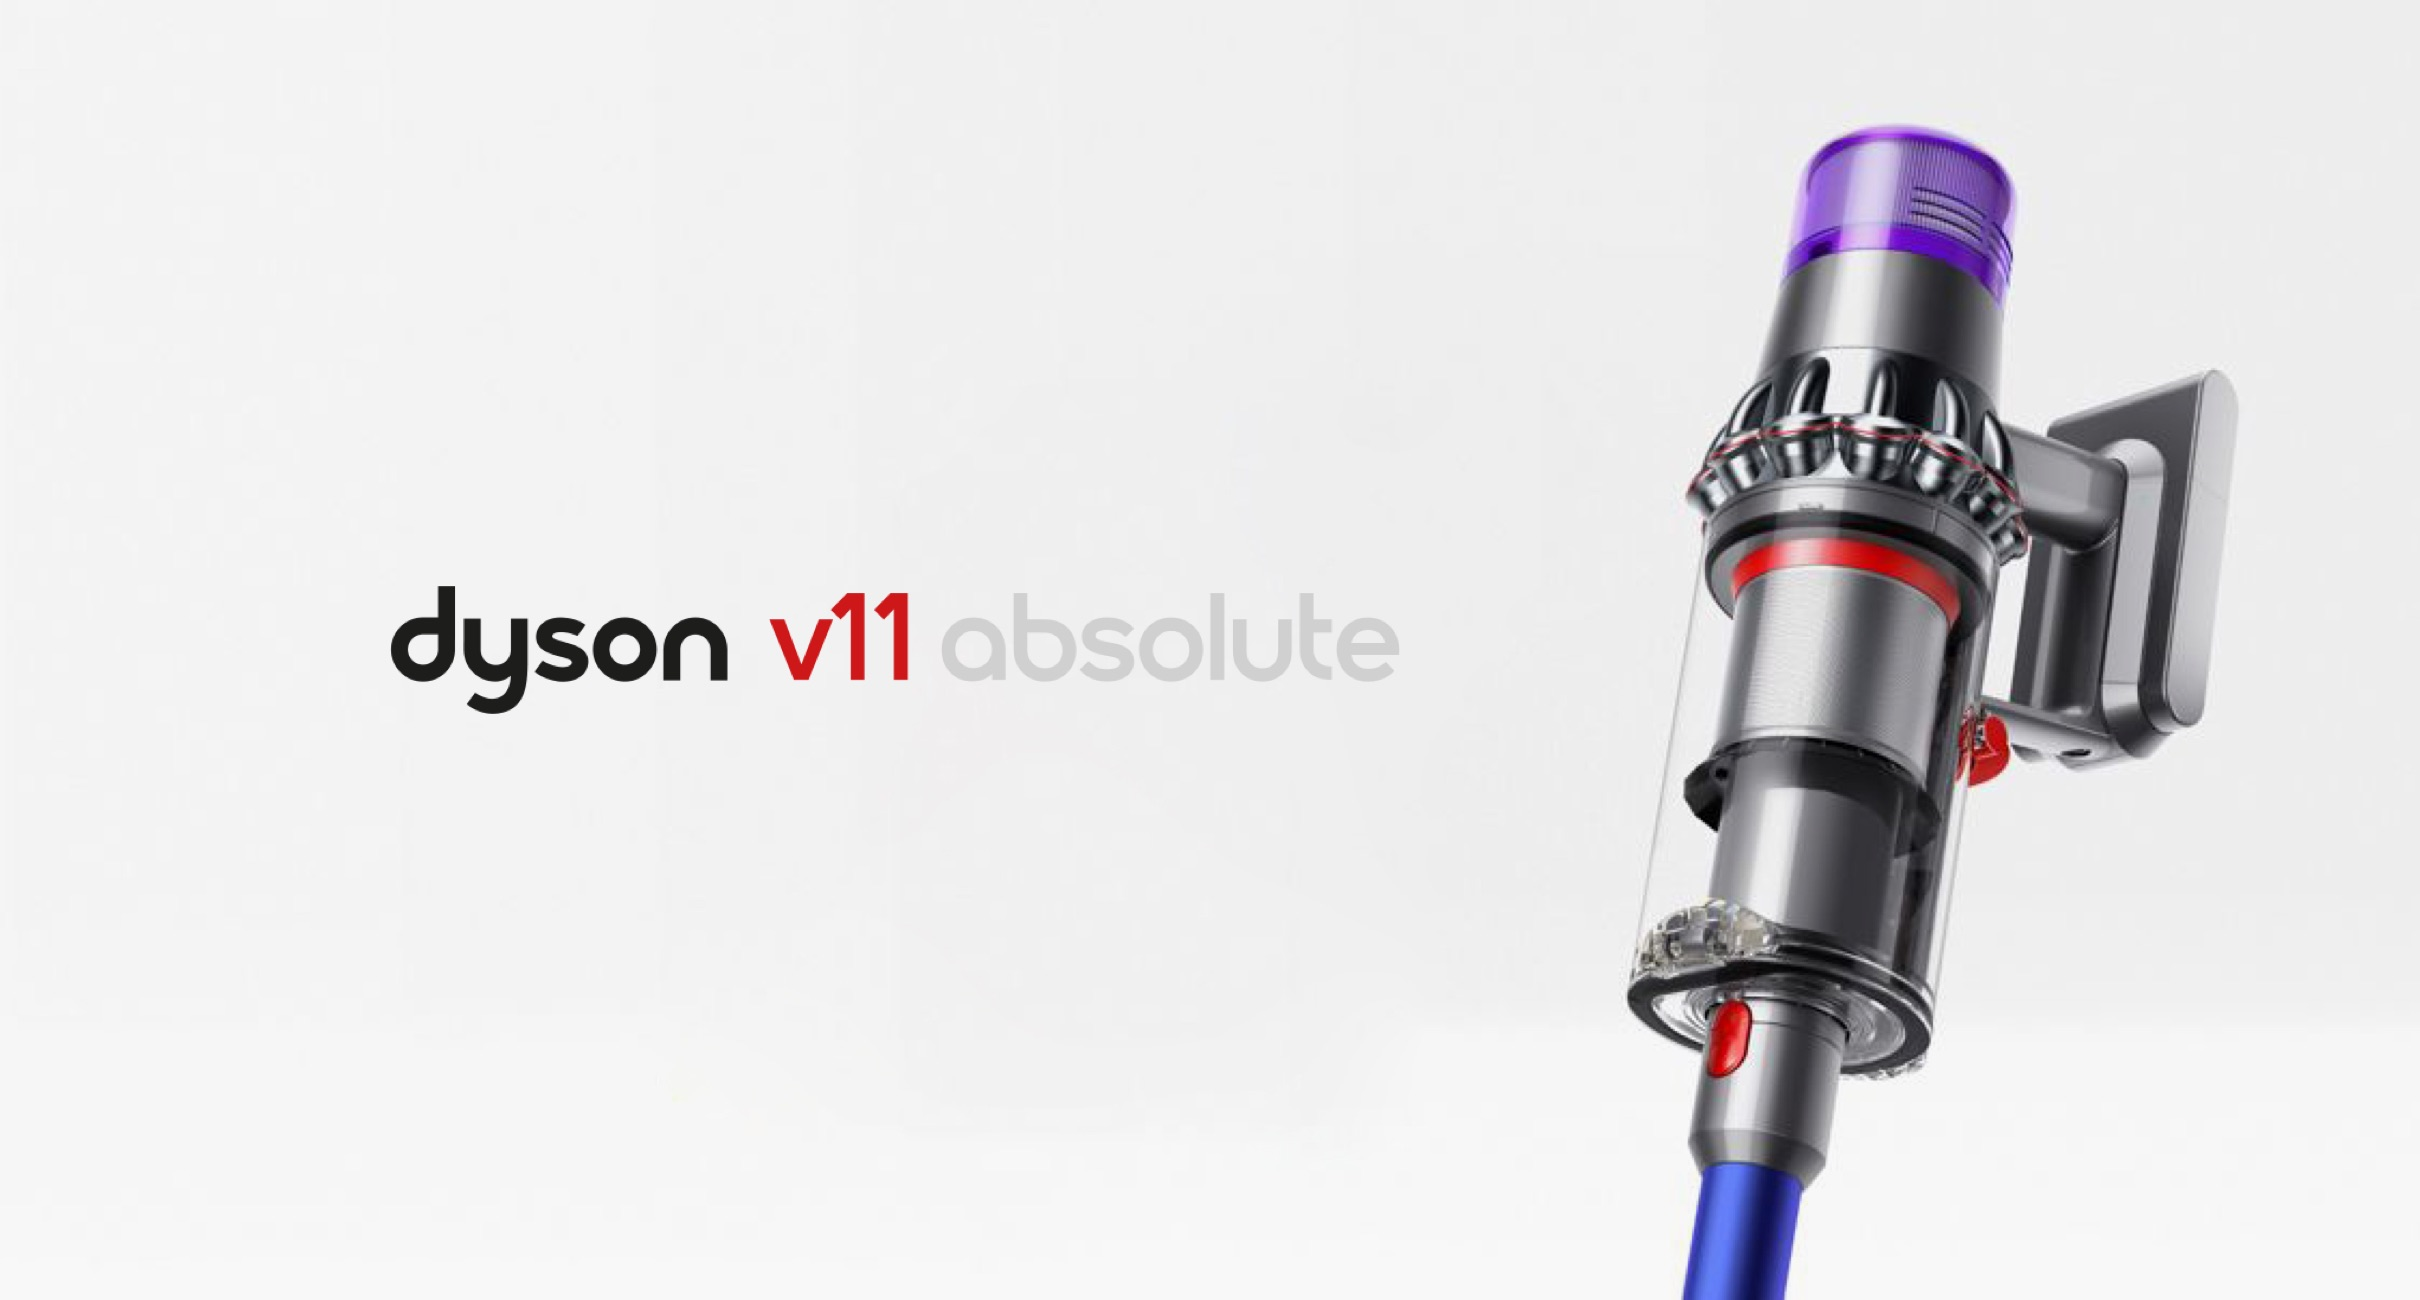 Win this Dyson V11 Absolute